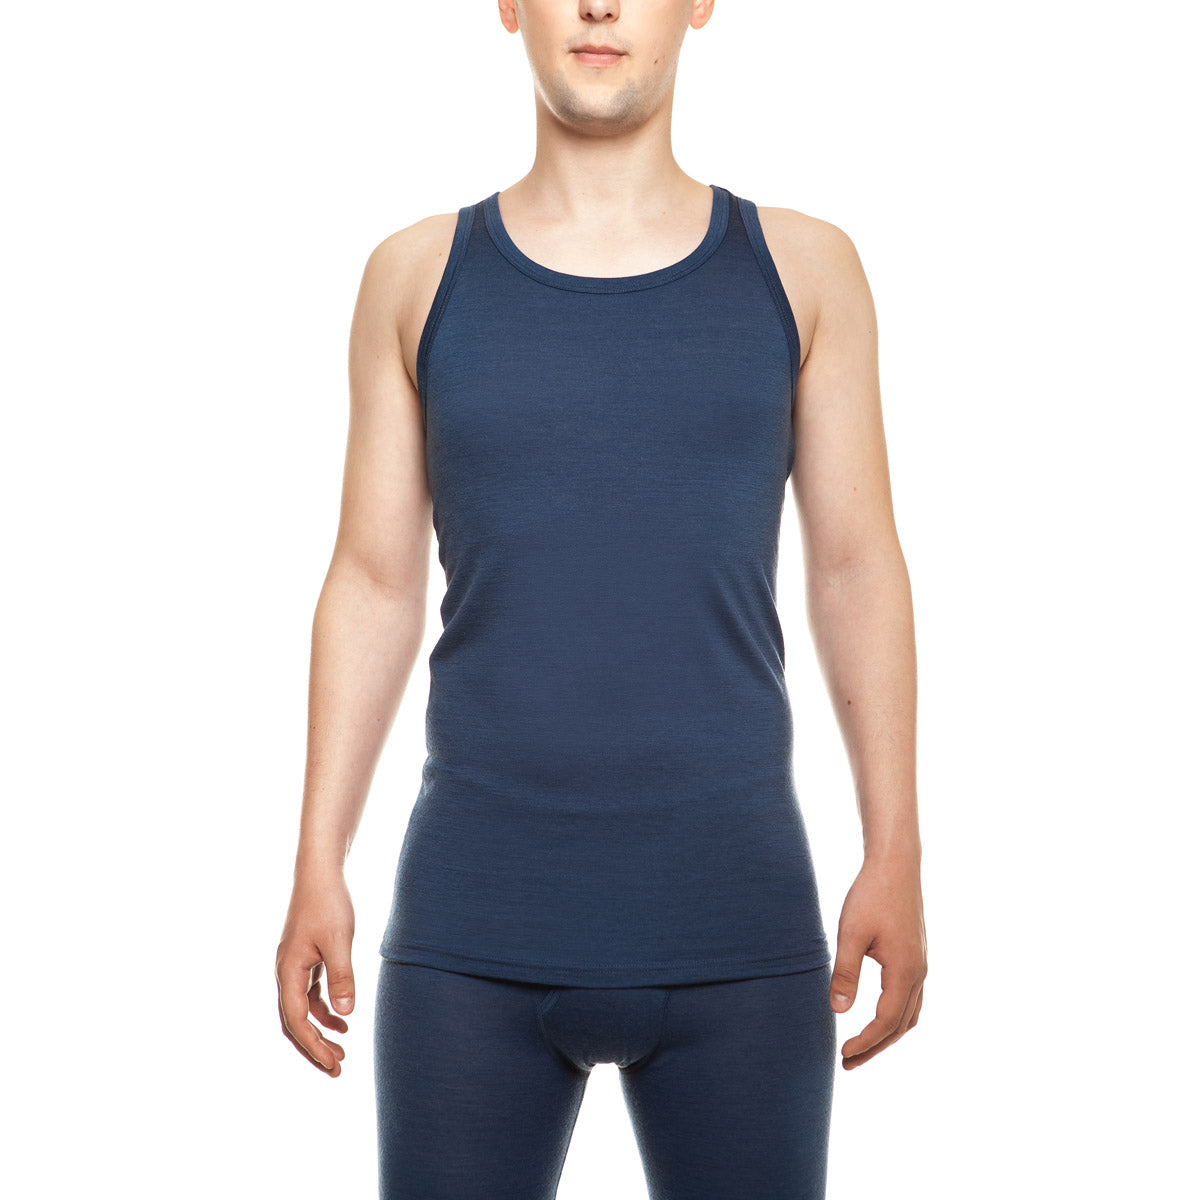 menique Men's Merino 160 Tank Top Denim Color in nature